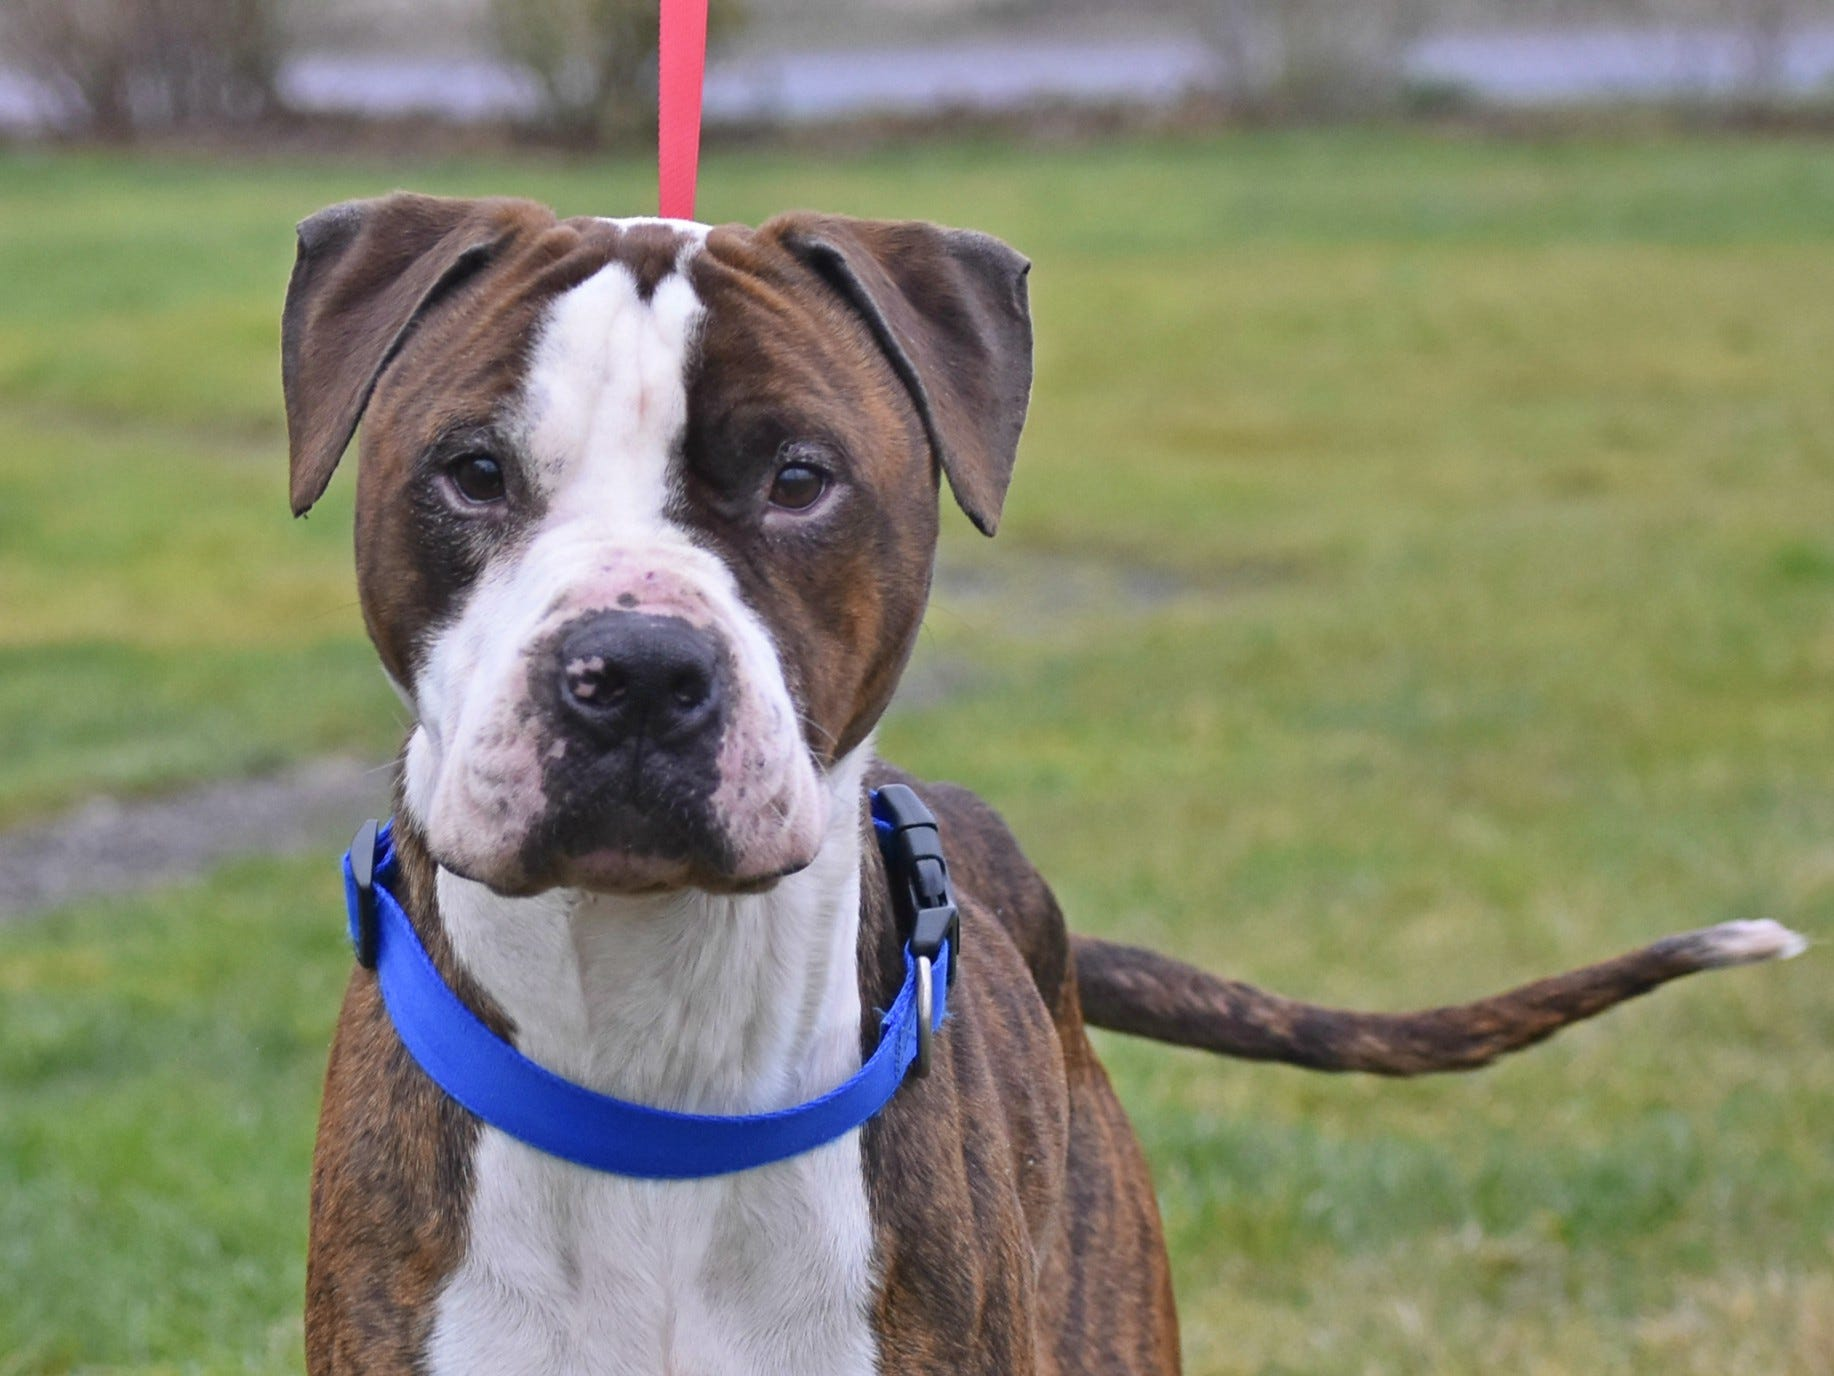 Waylan is a 6-year-old male brindle American pit bull mix. He is a sweet, goofy and lovable guy who loves walks, toys and couch time. Contact Marion County Dog Services at 503-588-5366 or go to www.MCDogs.net.